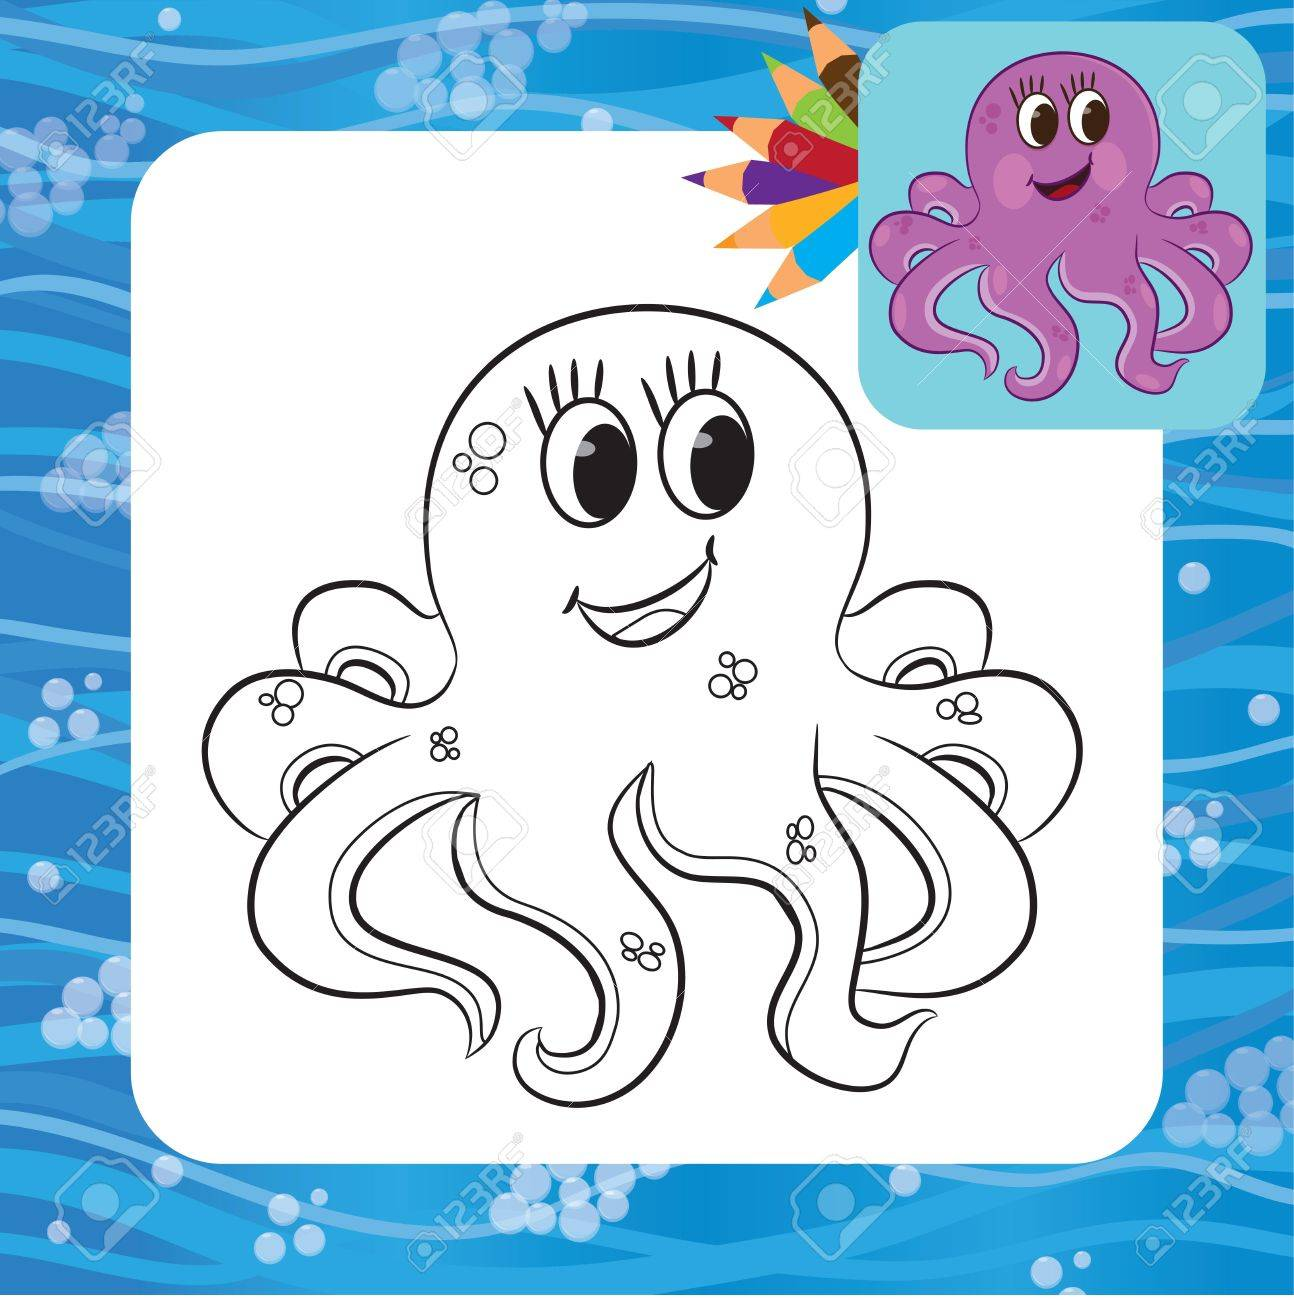 cartoon octopus coloring page vector illustration royalty free